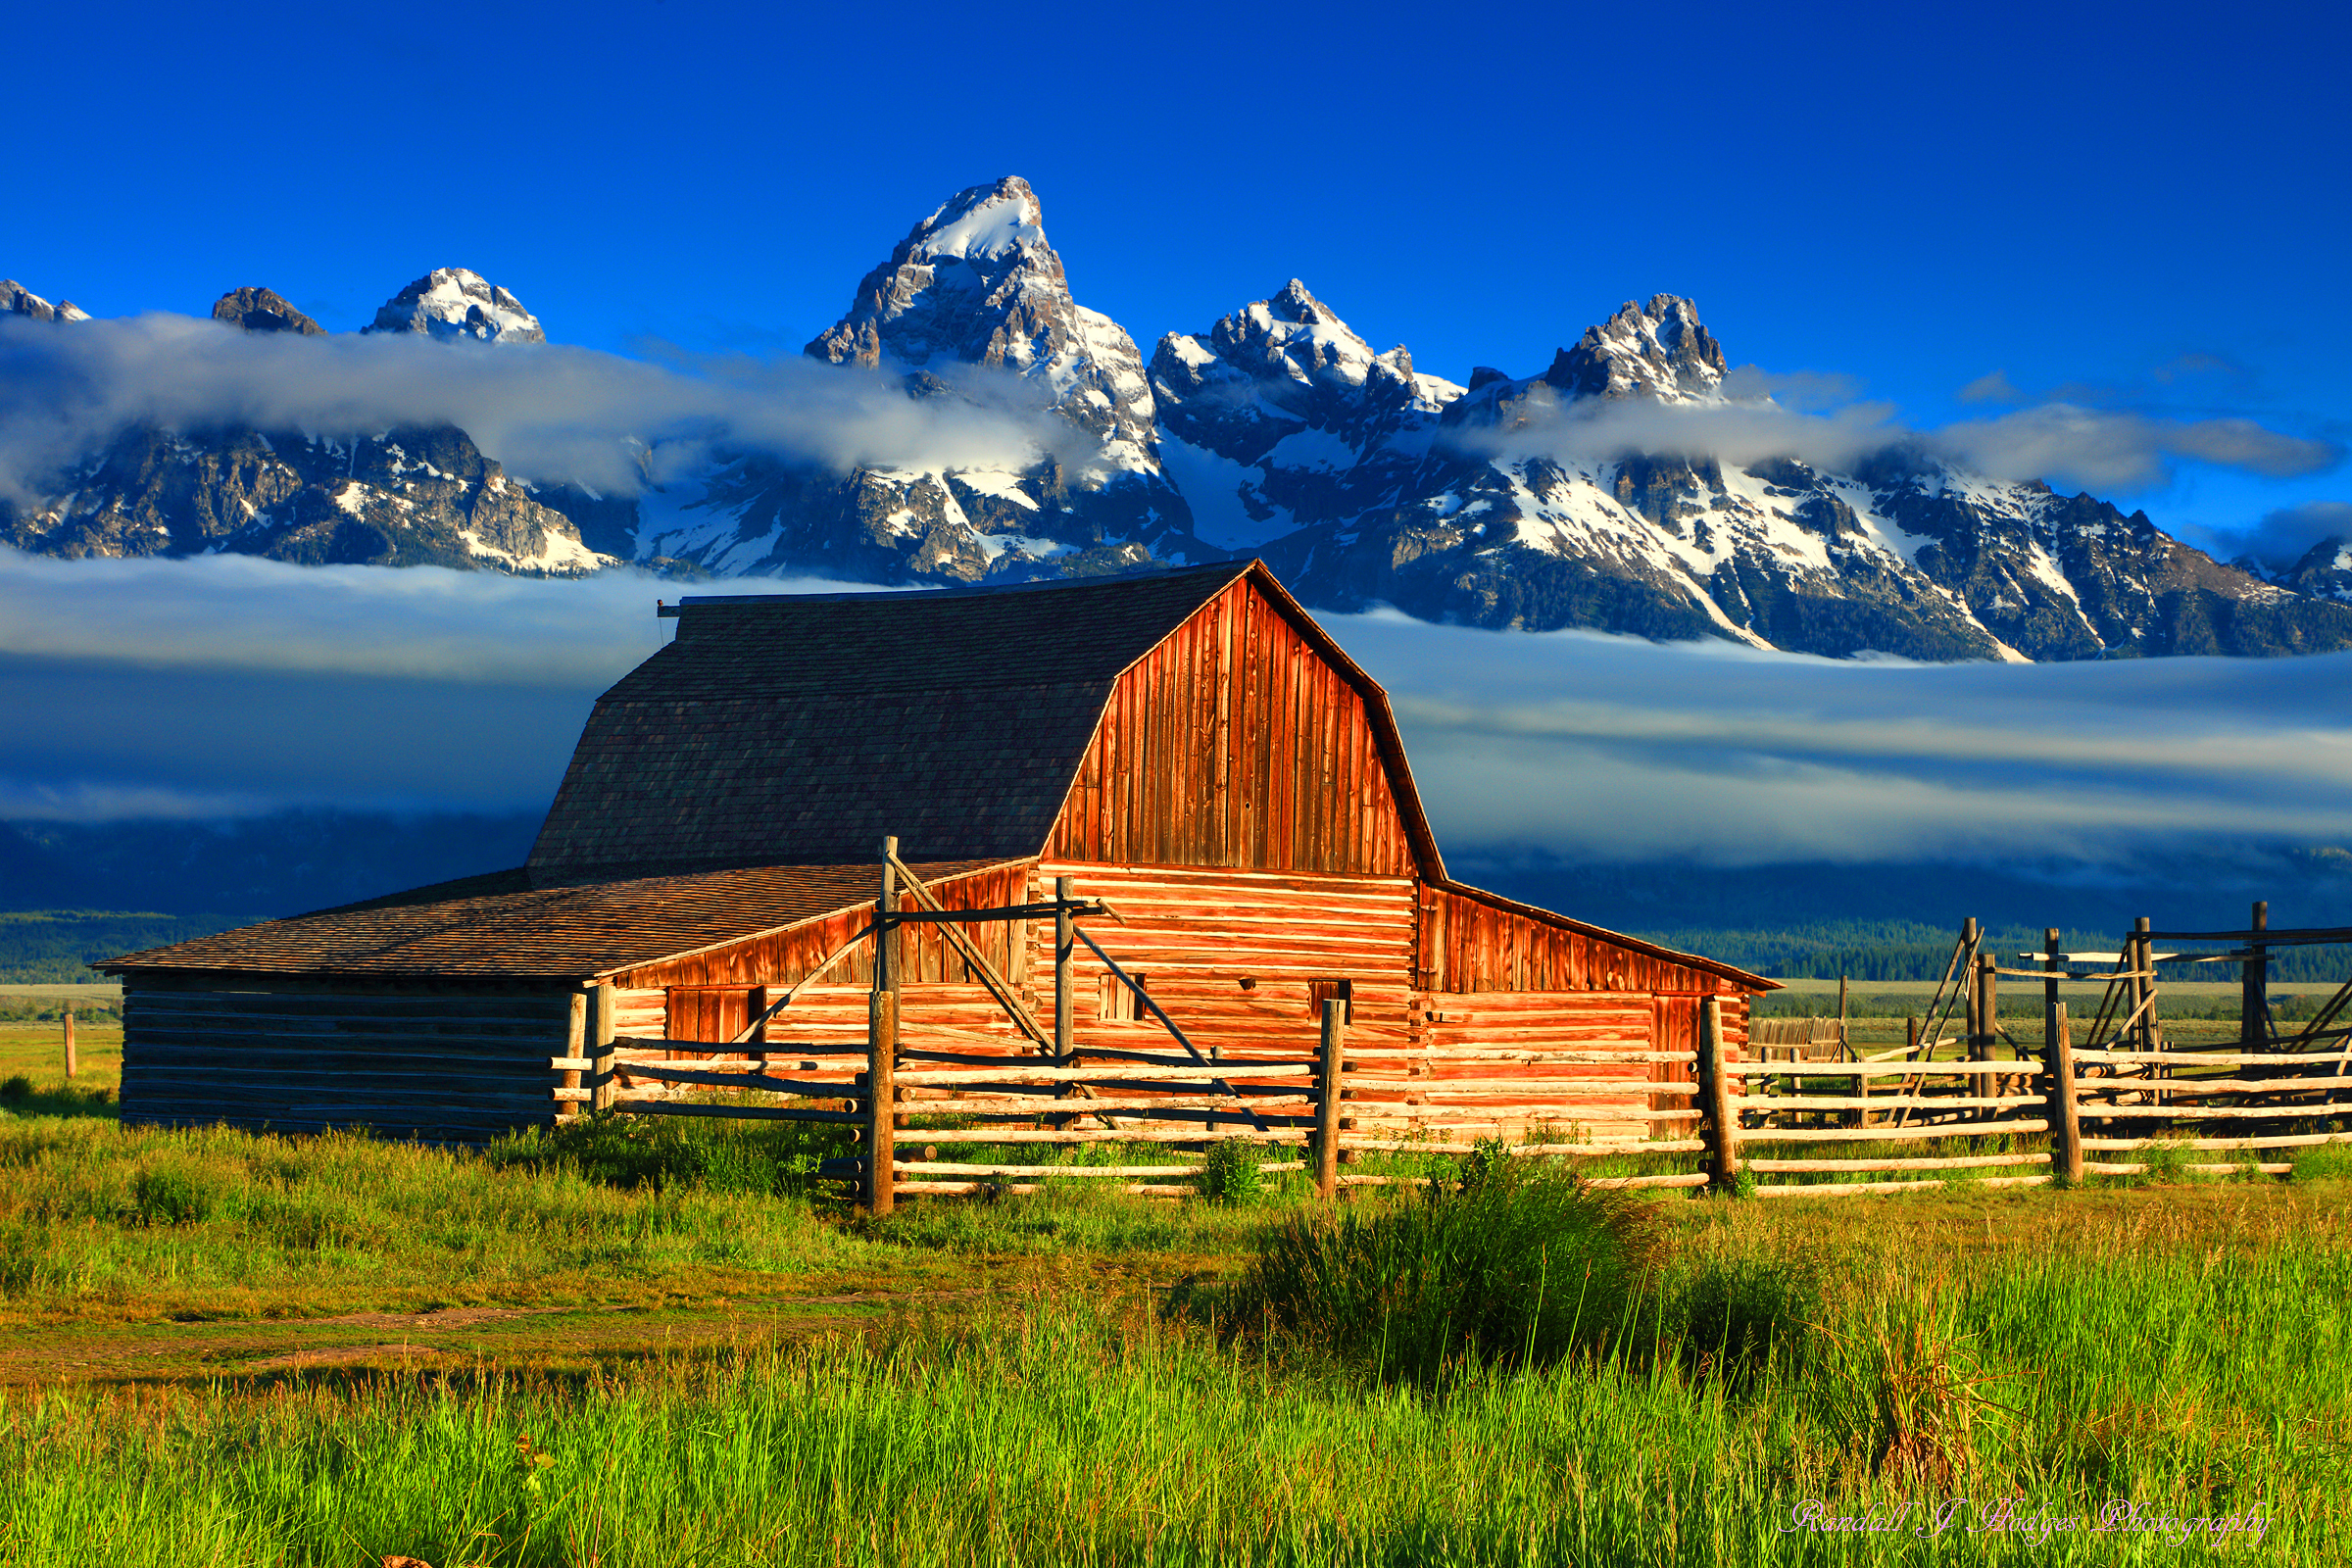 Morning Light and the John Moulton Barn With the Grand Tetons from Morman Row in Grand Teton National Park in Wyoming